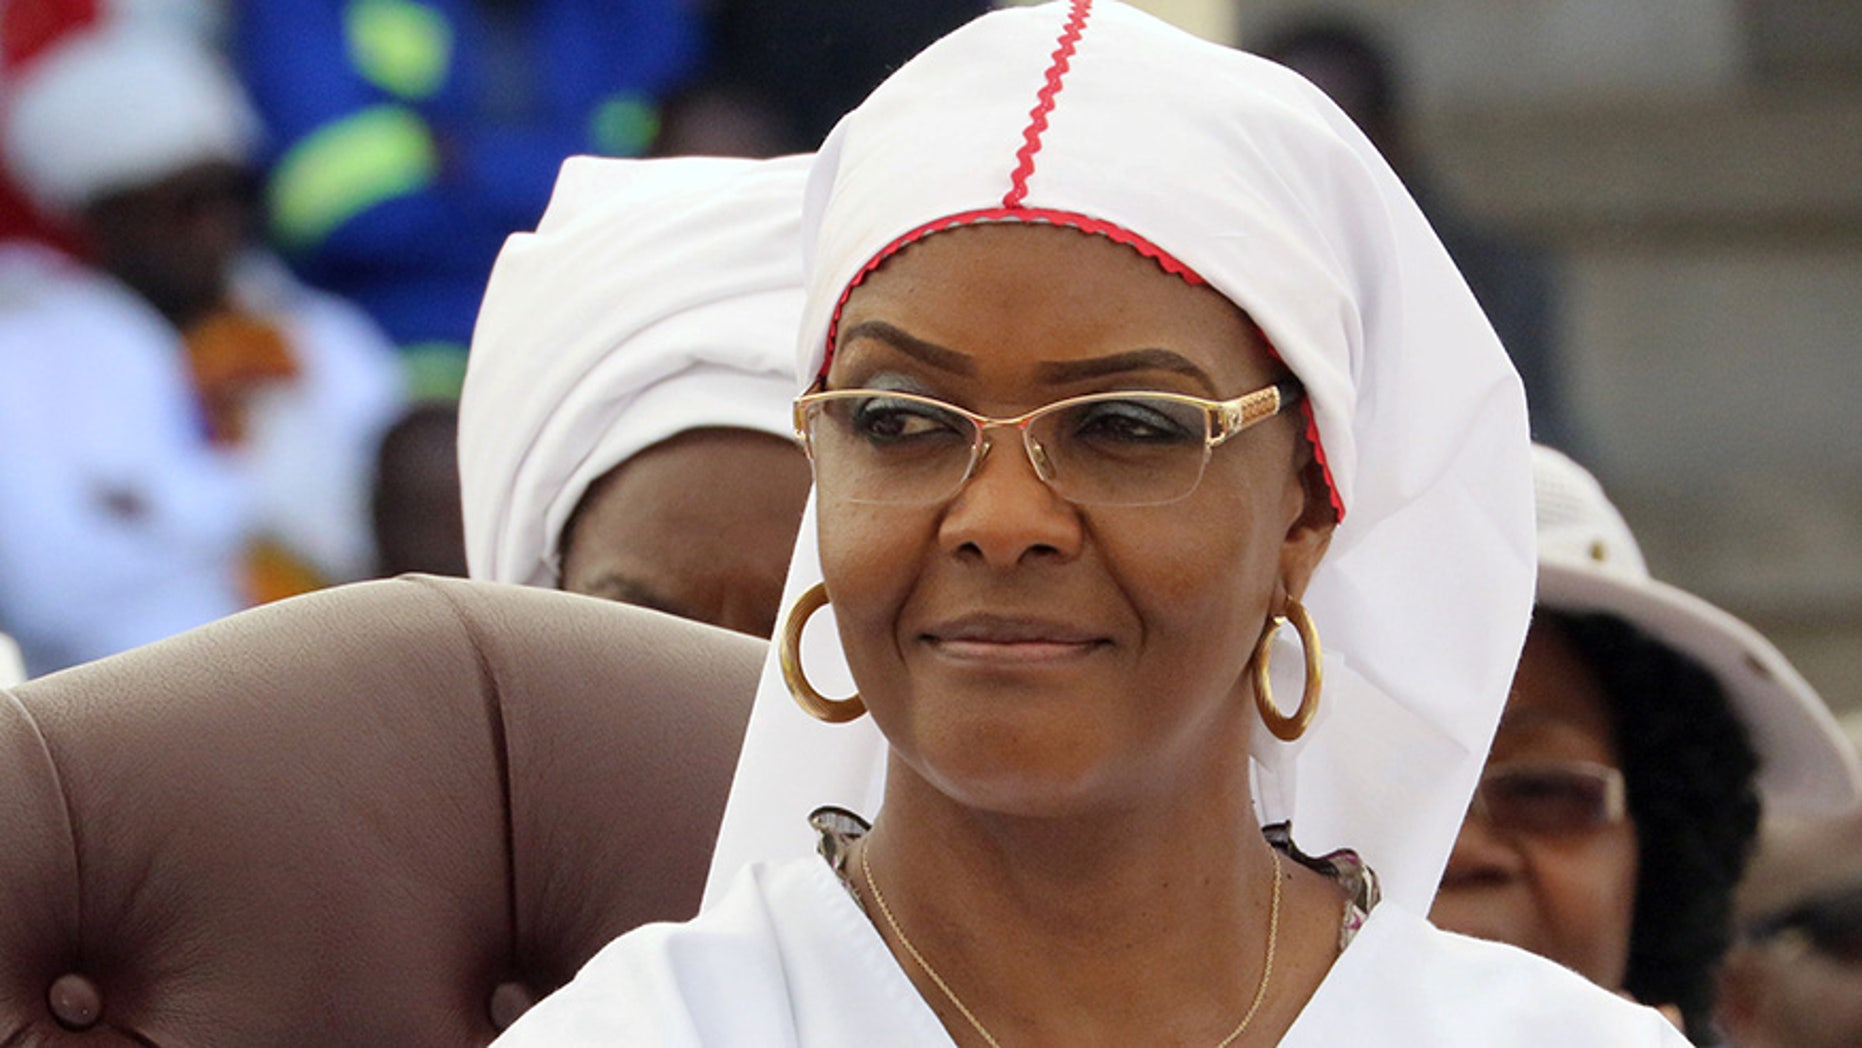 Grace Mugabe's rise to power appears to have triggered what appears to be the end of her husband's 32-year rule in Zimbabwe.